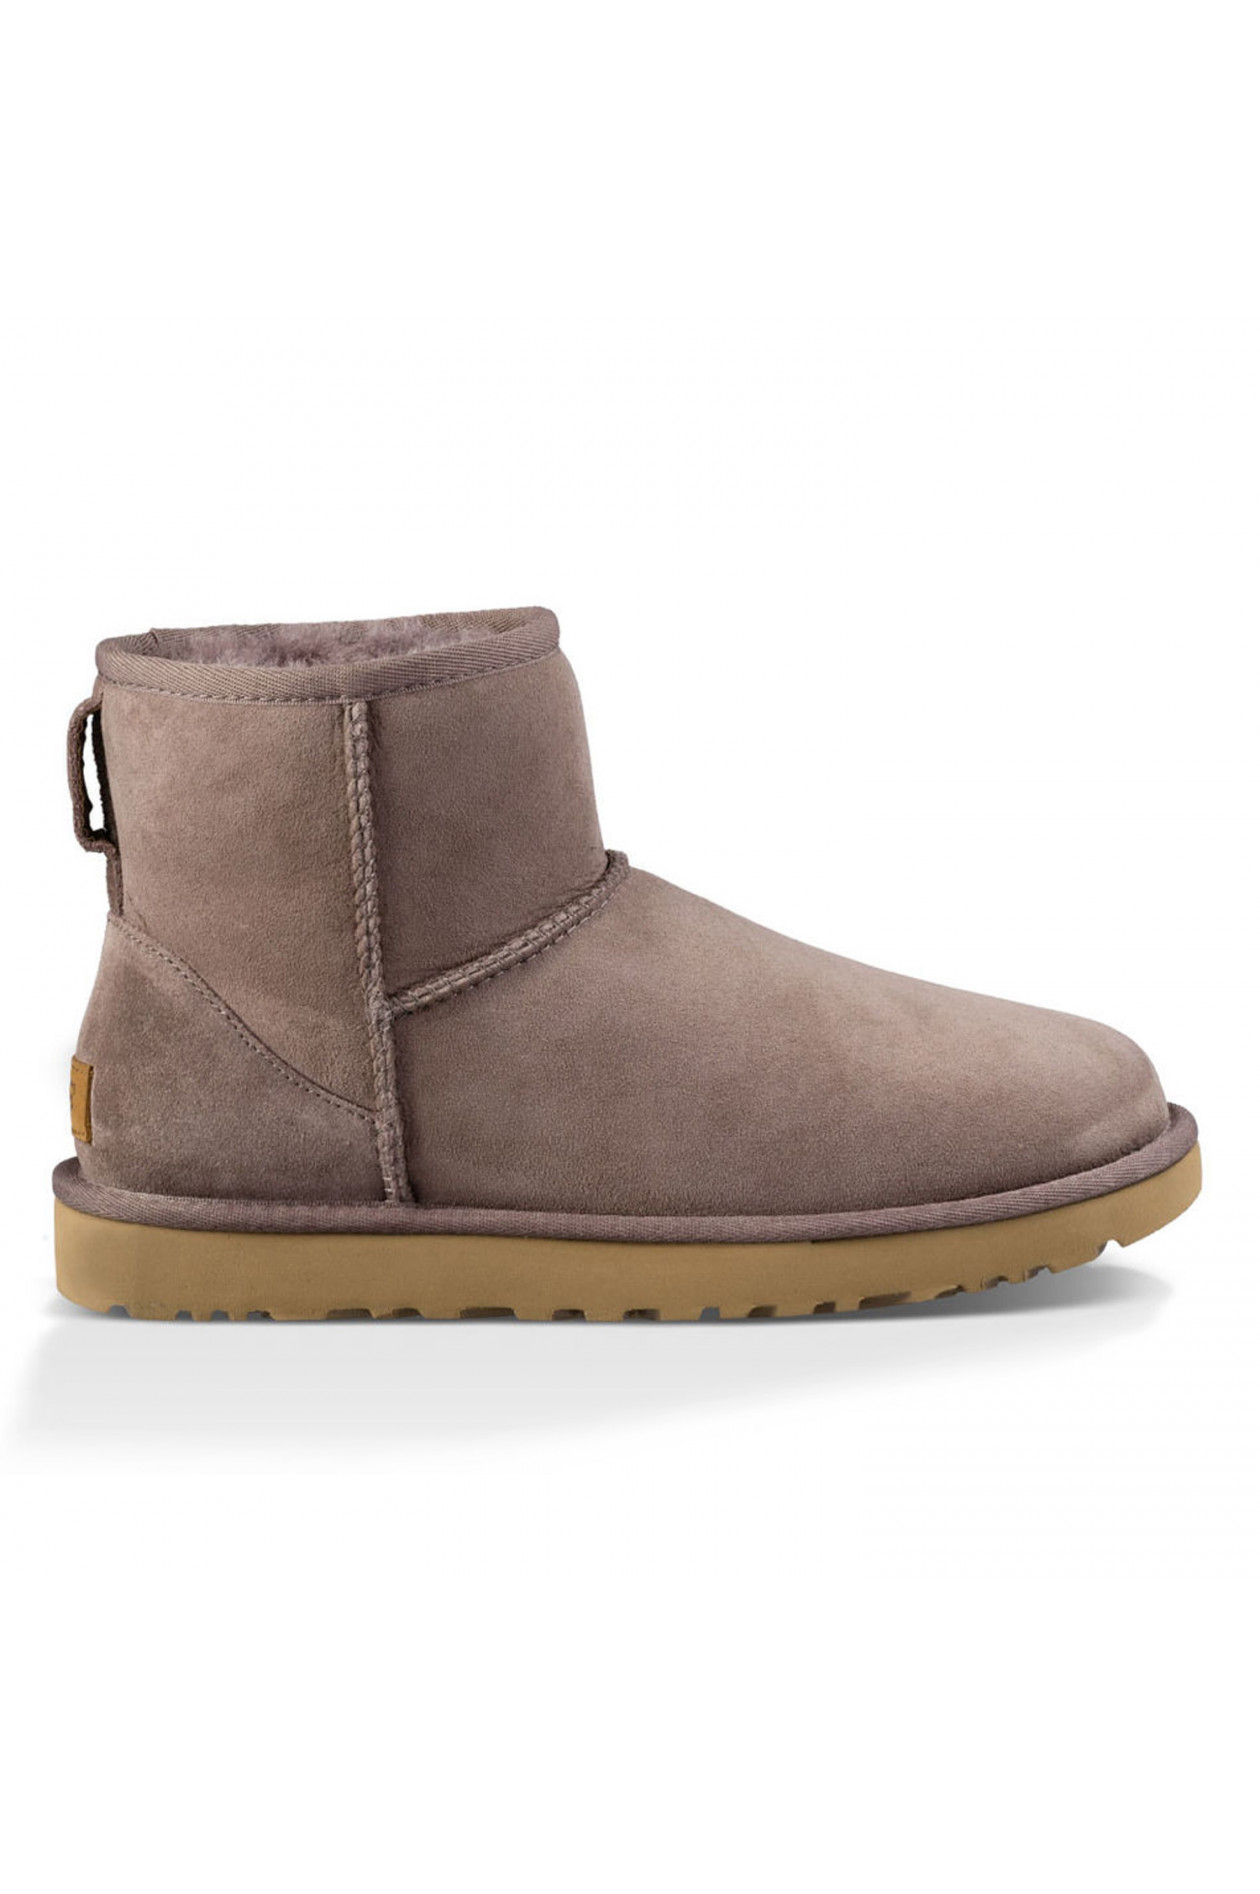 Boots CLASSIC MINI in GreyTaupe